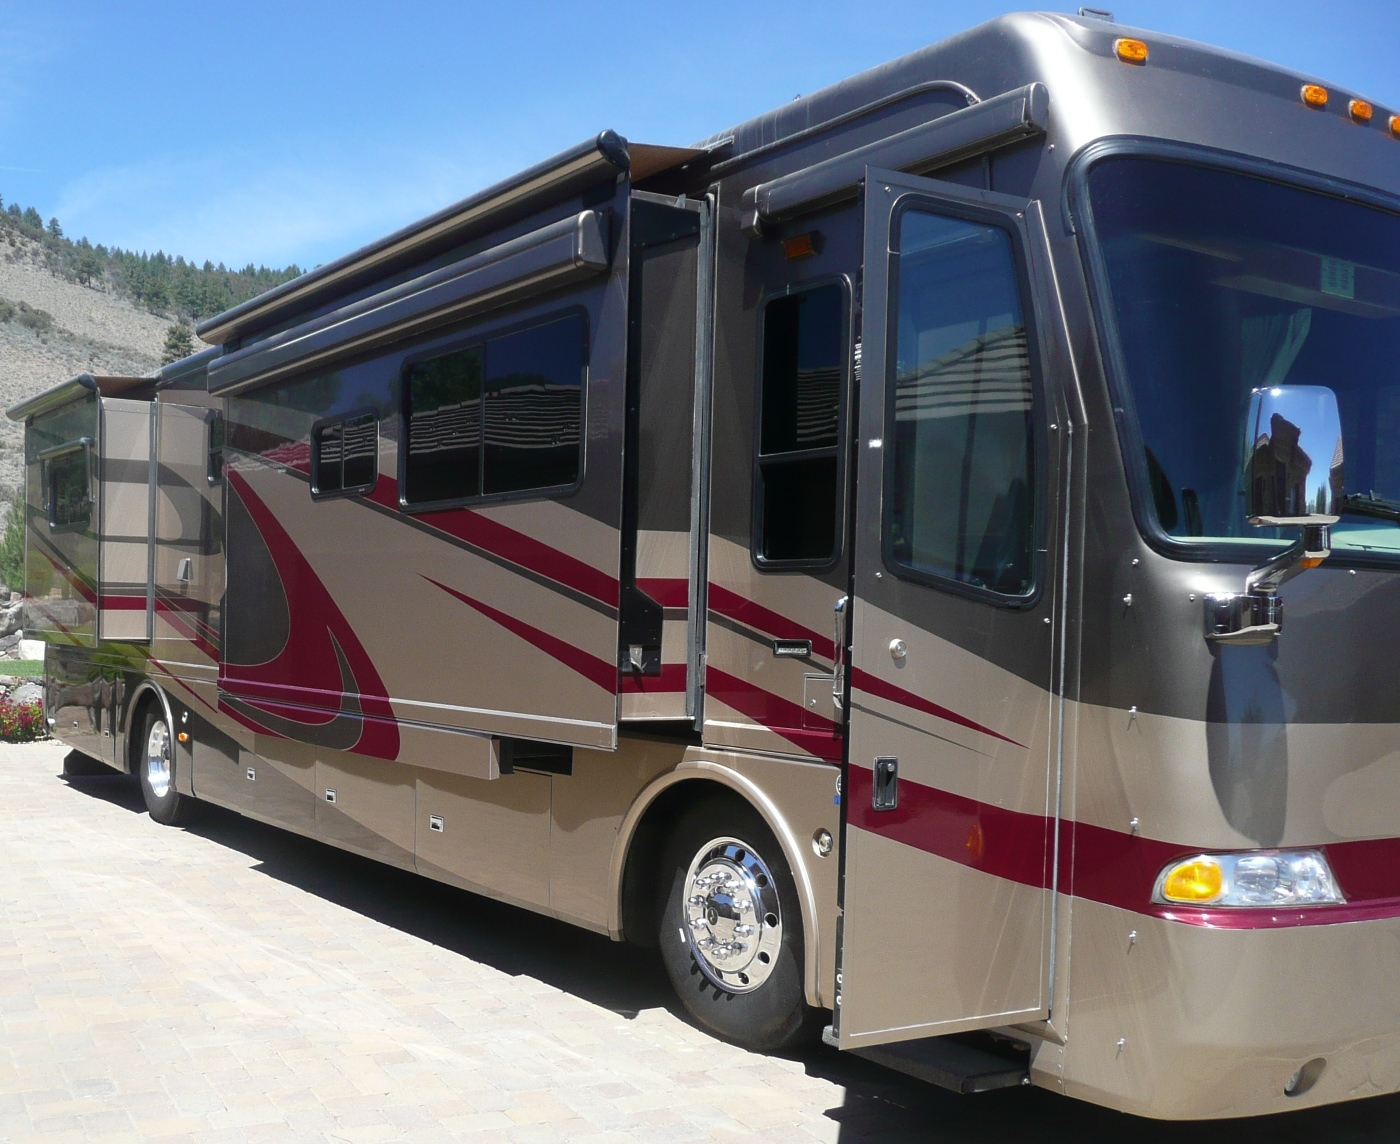 Used Motorhomes For Sale By Owner >> 2006 Beaver Monterey | Used Diesel Motorhomes for sale